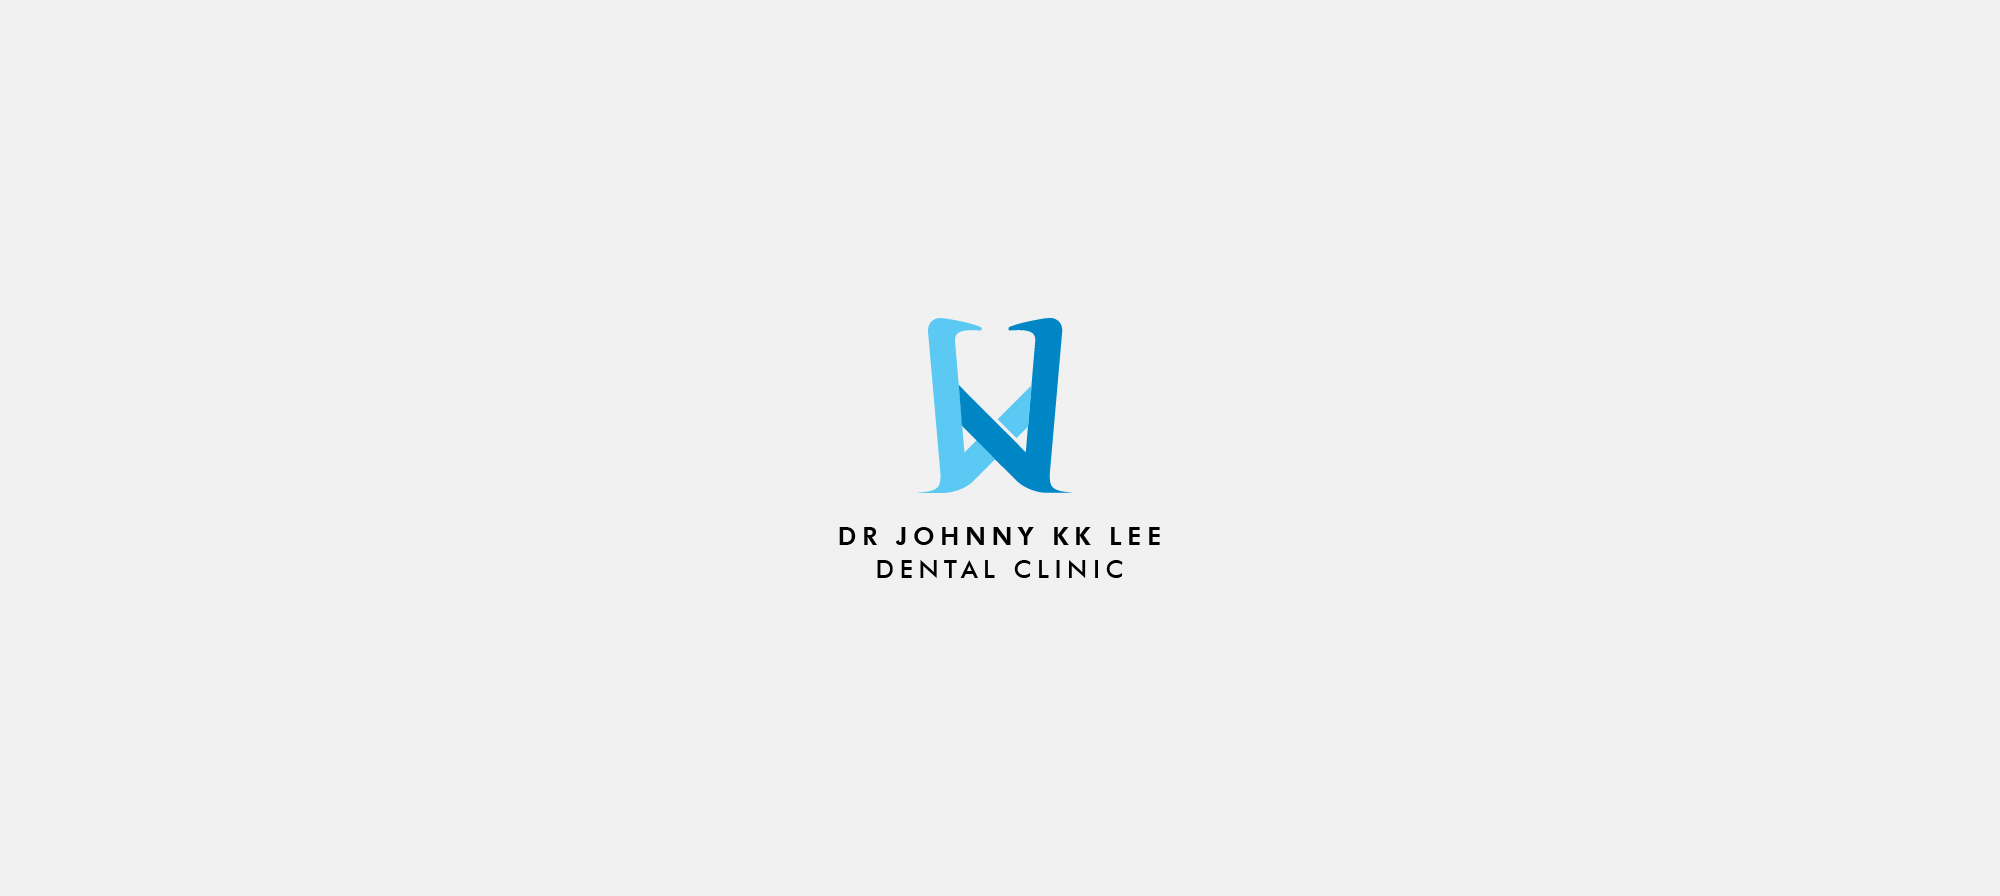 all_logo_behance_151021-02